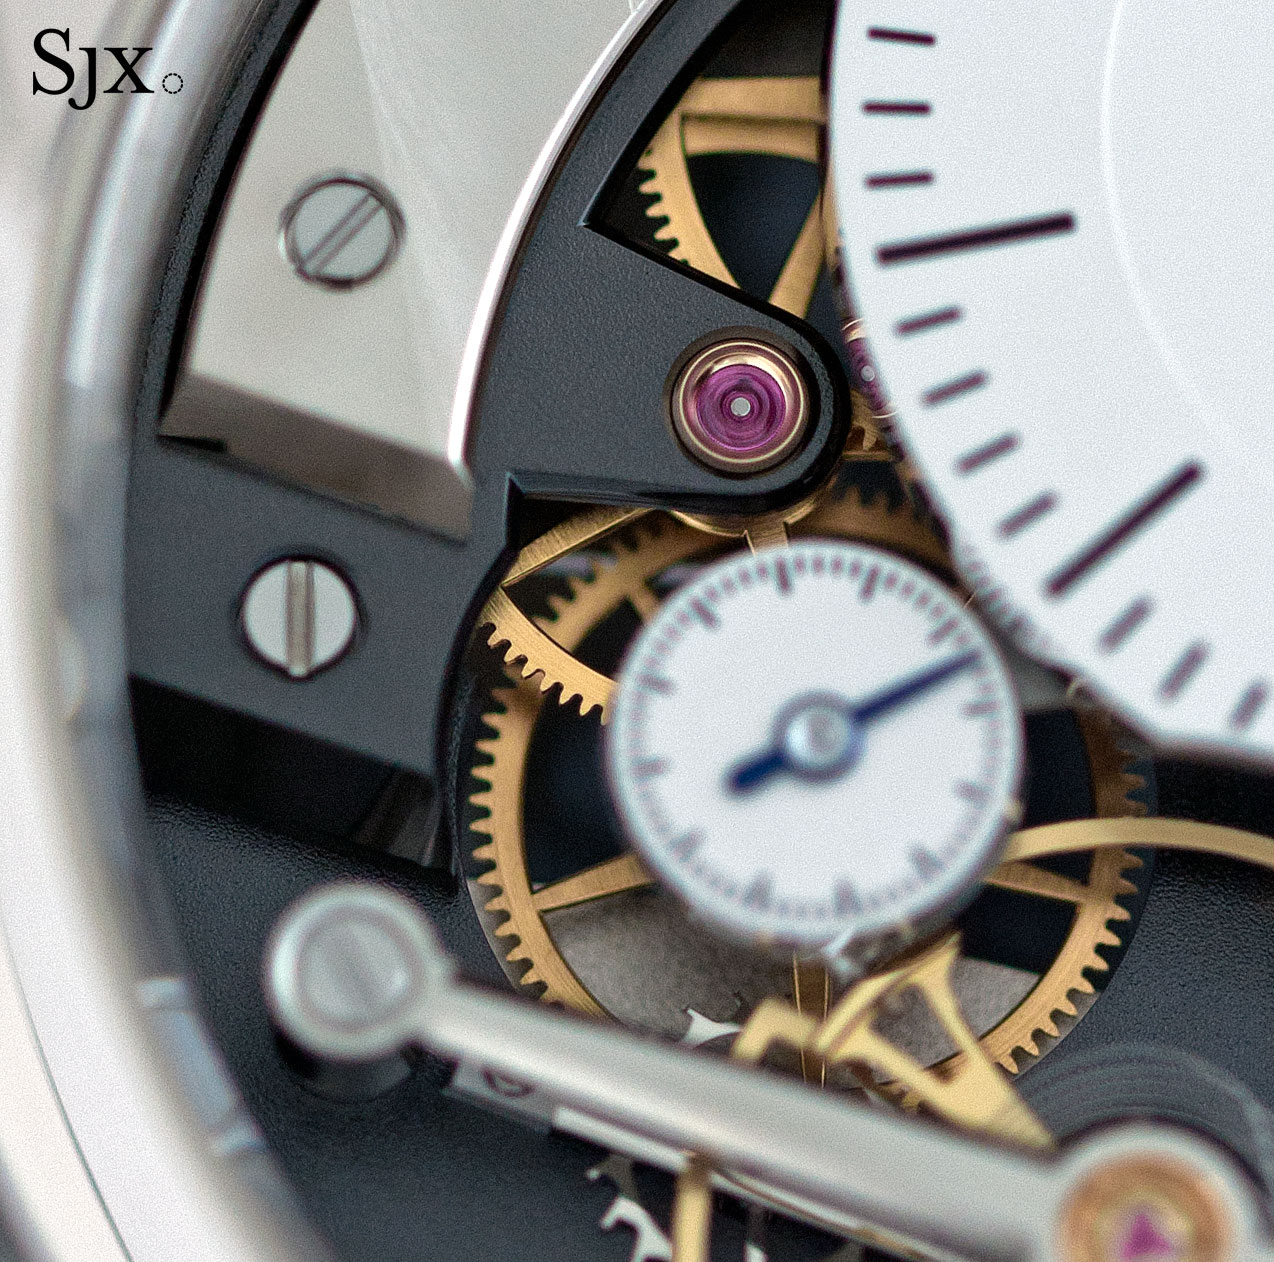 Greubel Forsey Signature 1 stainless steel 1